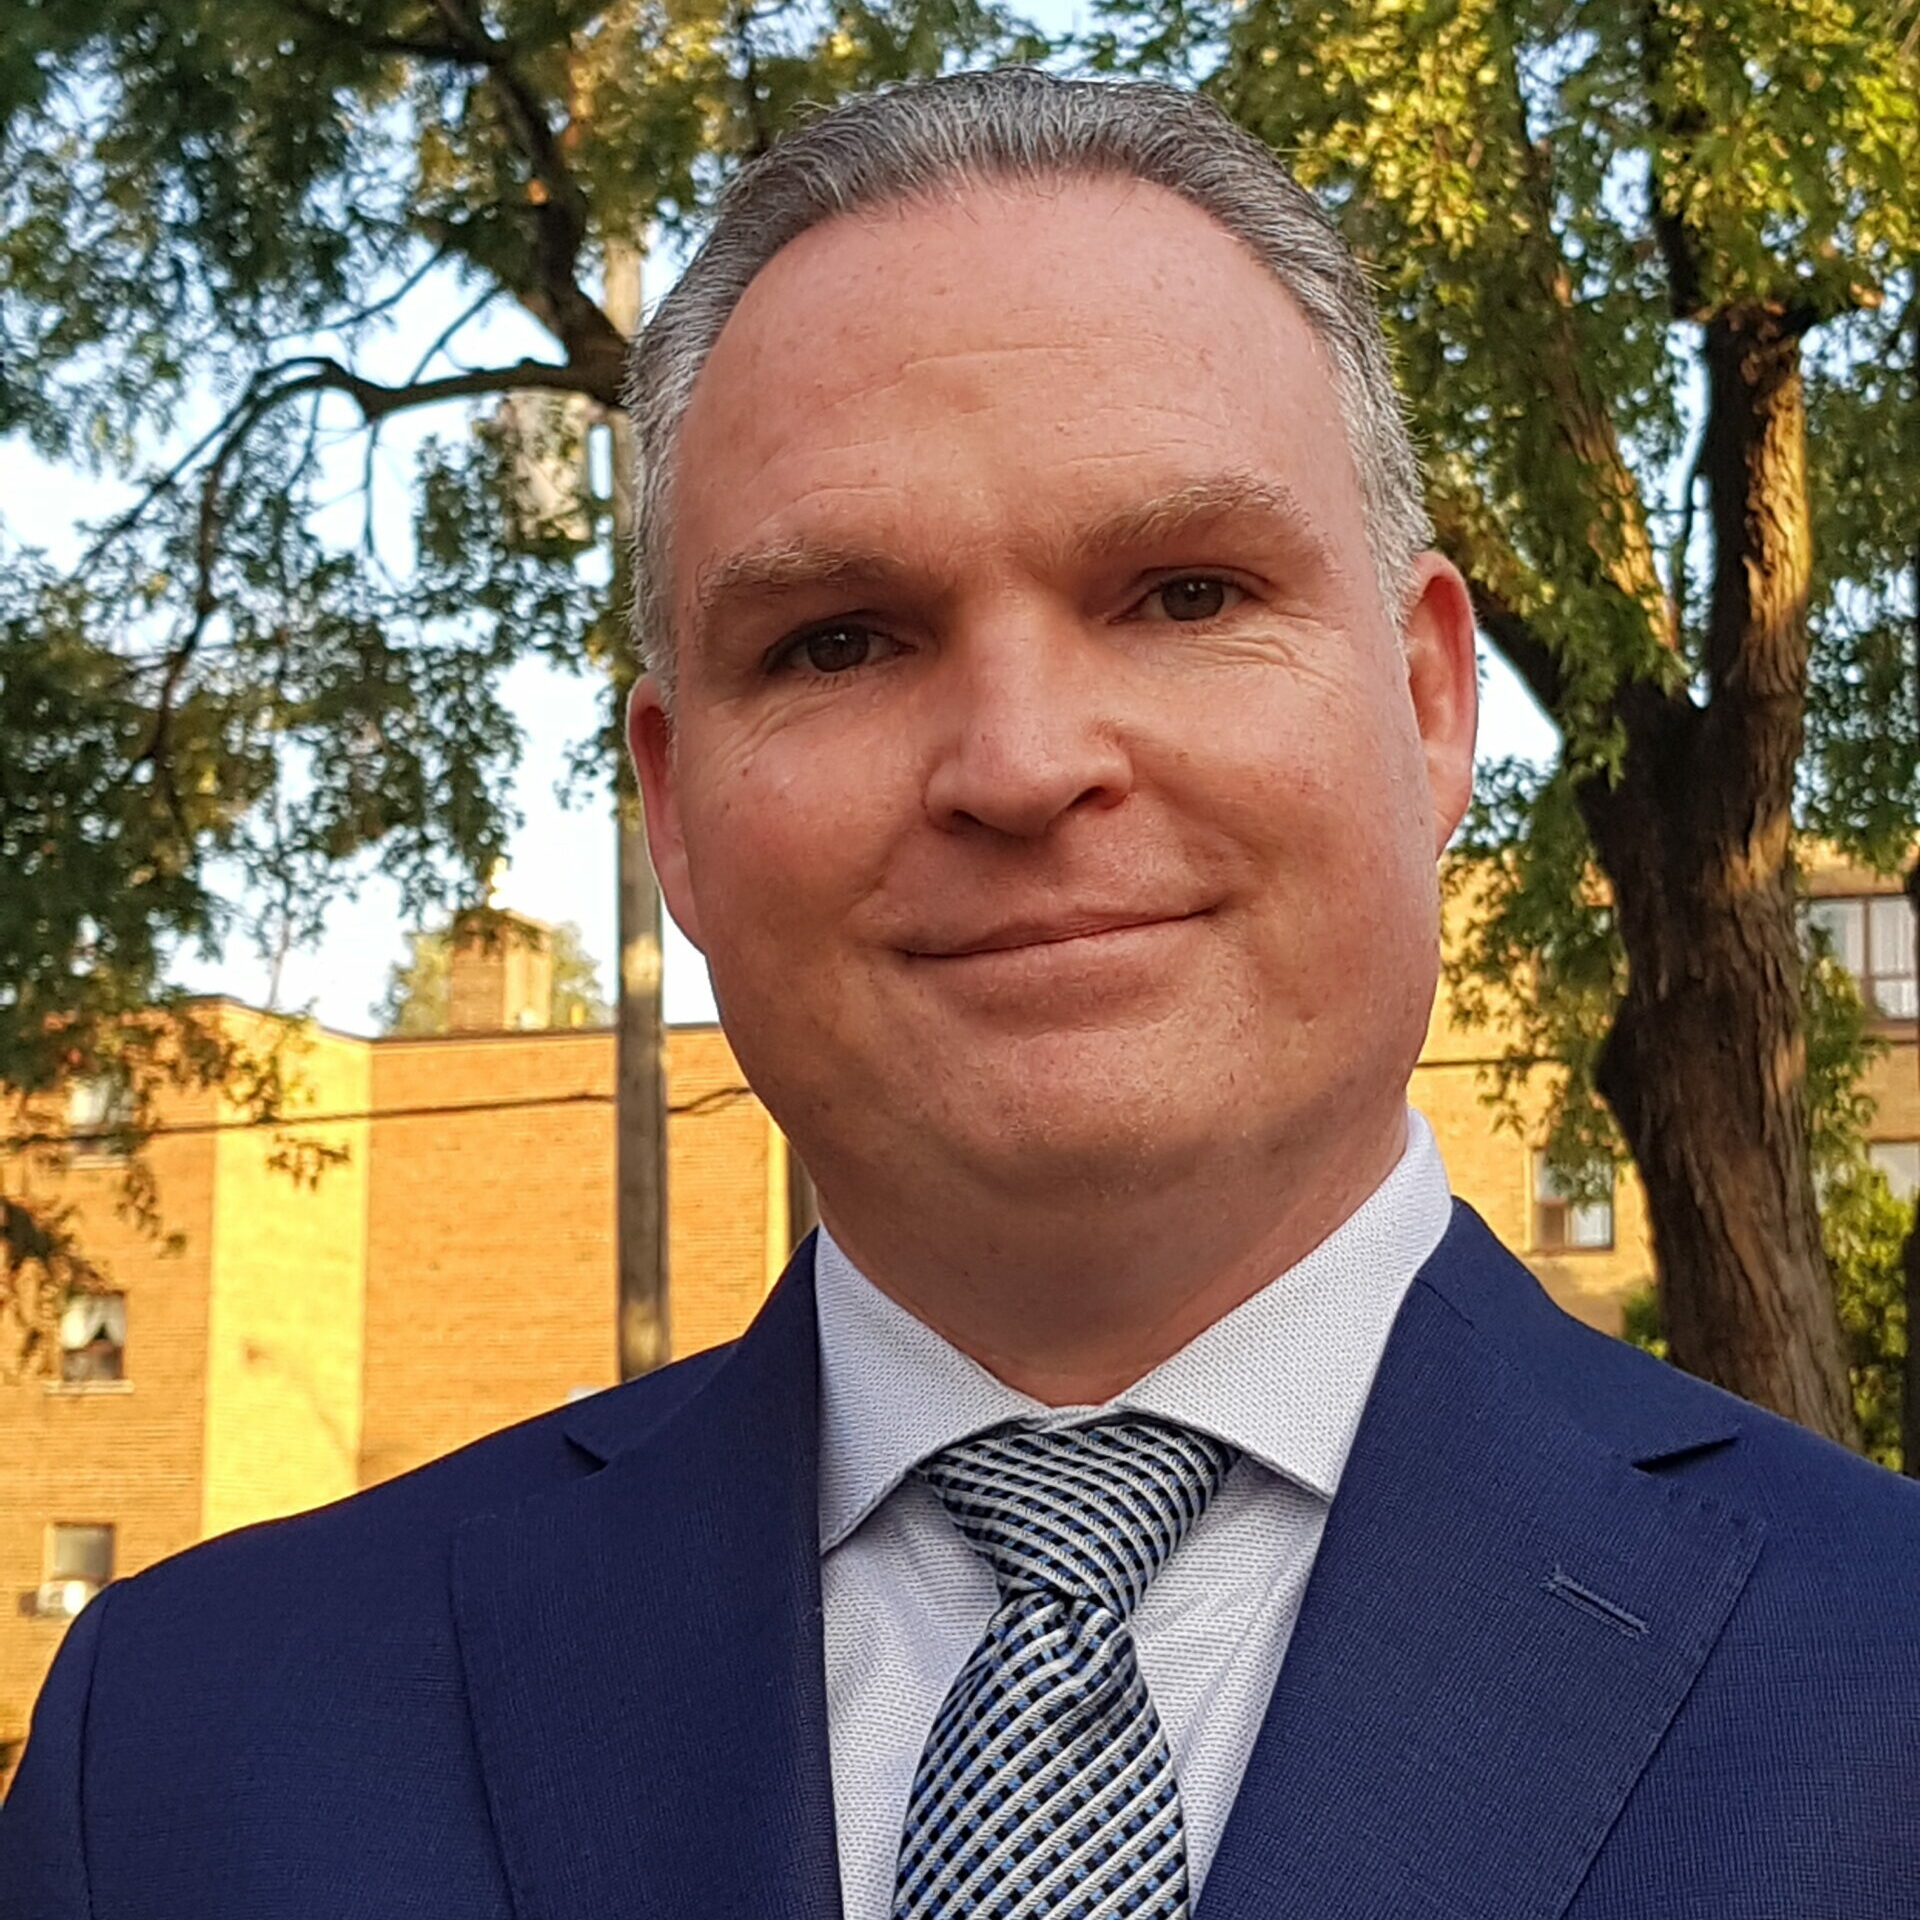 Close-up Shot Of Allan MacDermid In A Dark Blue Suit With Blue Striped Tie Smiling Into Camera, Taken Outside With Trees And A Building Behind Him.